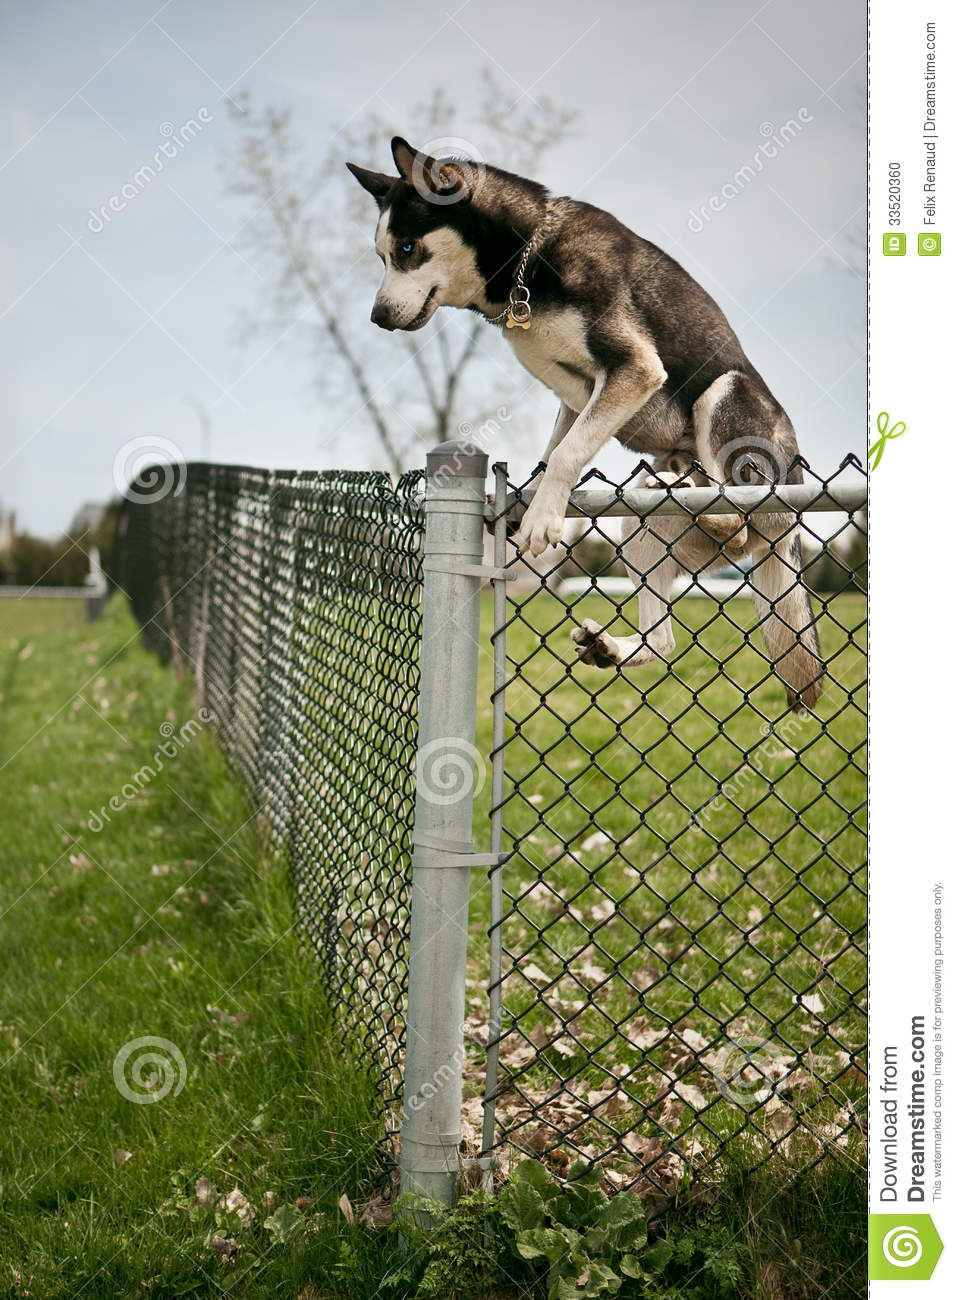 Dog Jumping Over An Outdoor Dog Park Fence Stock Photo